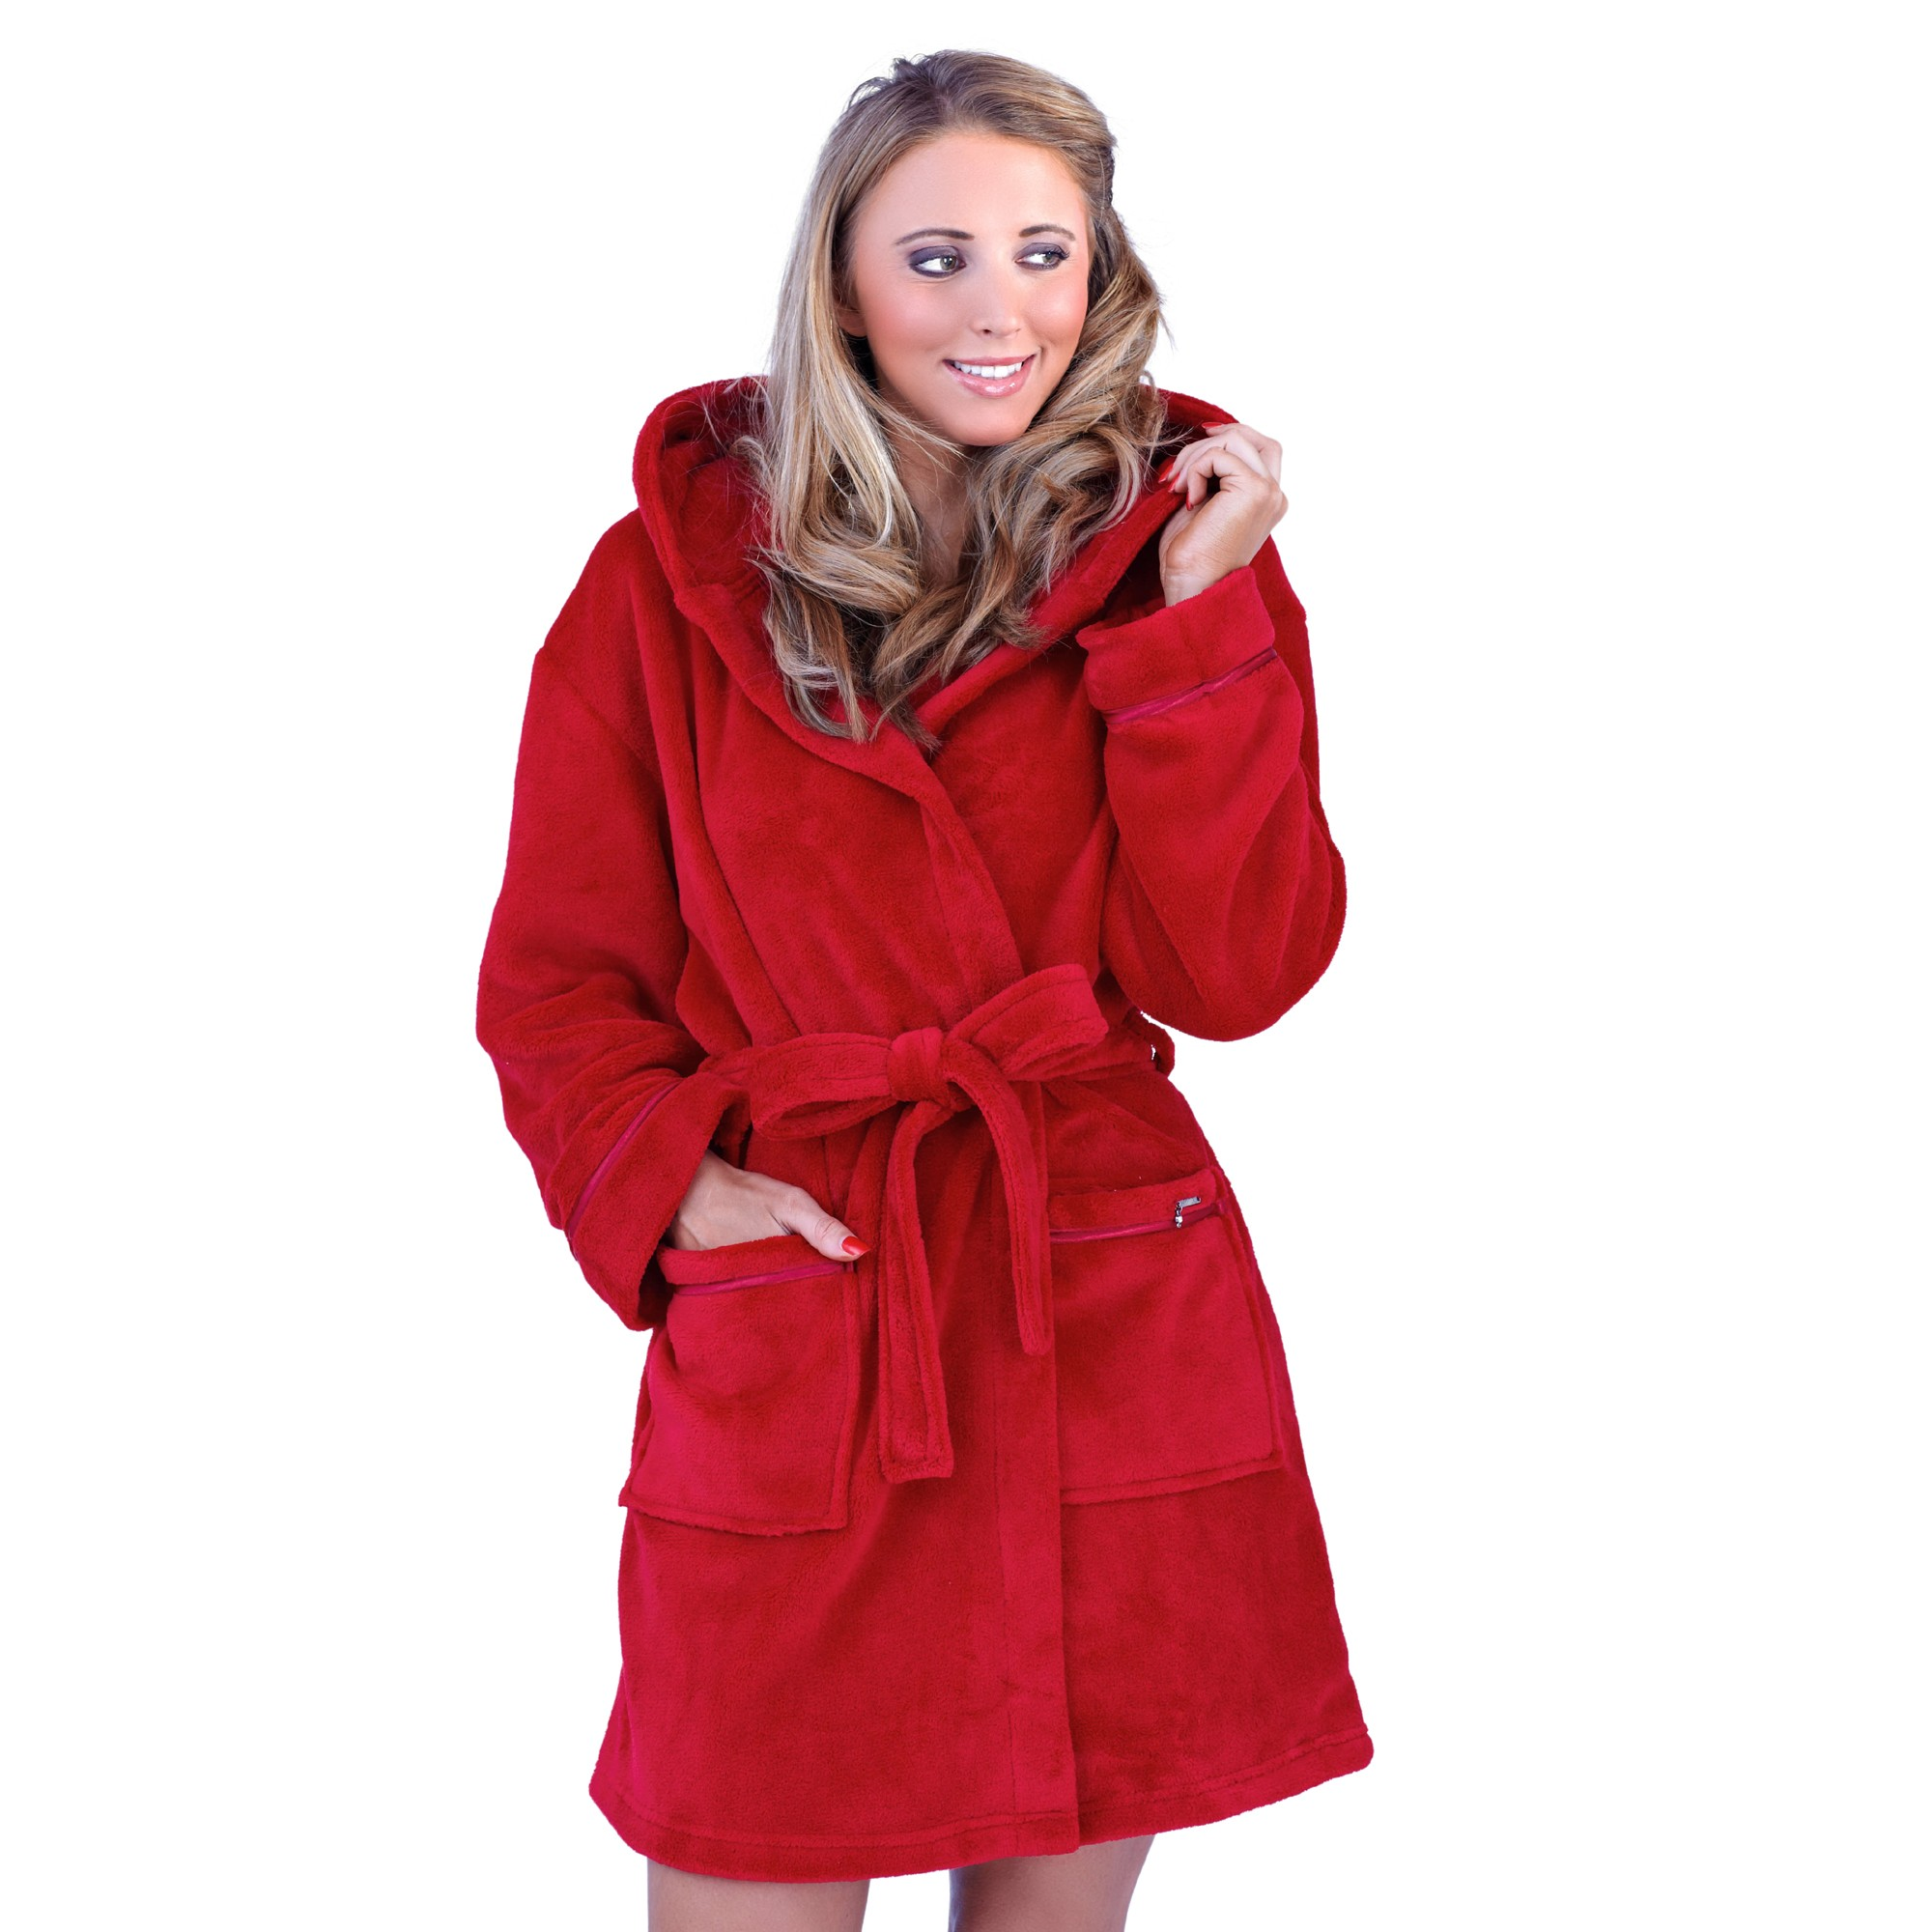 Ladies Super Soft Hooded Fleece Dressing Gown - Red